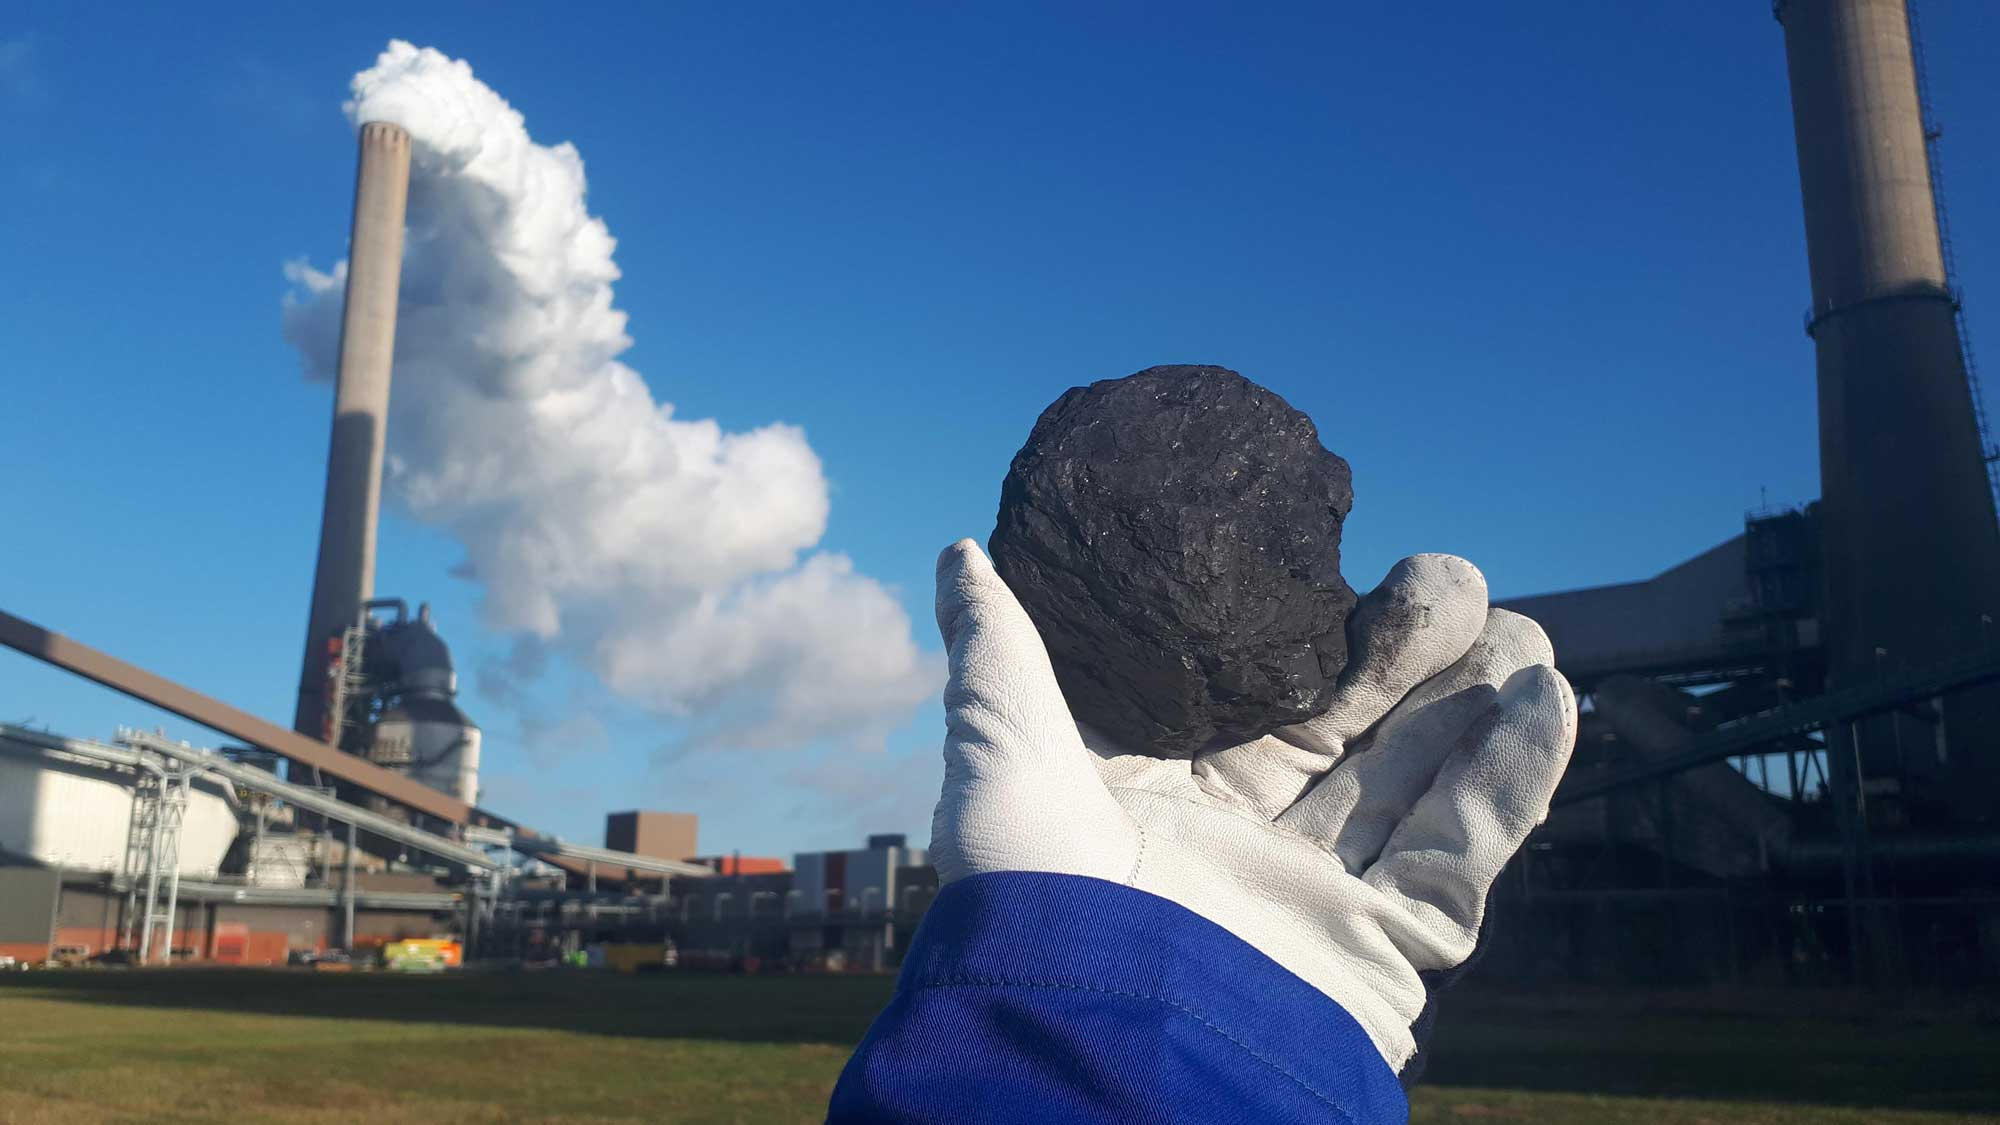 Photograph of a person holding a chunk of coal in front of a power plant.